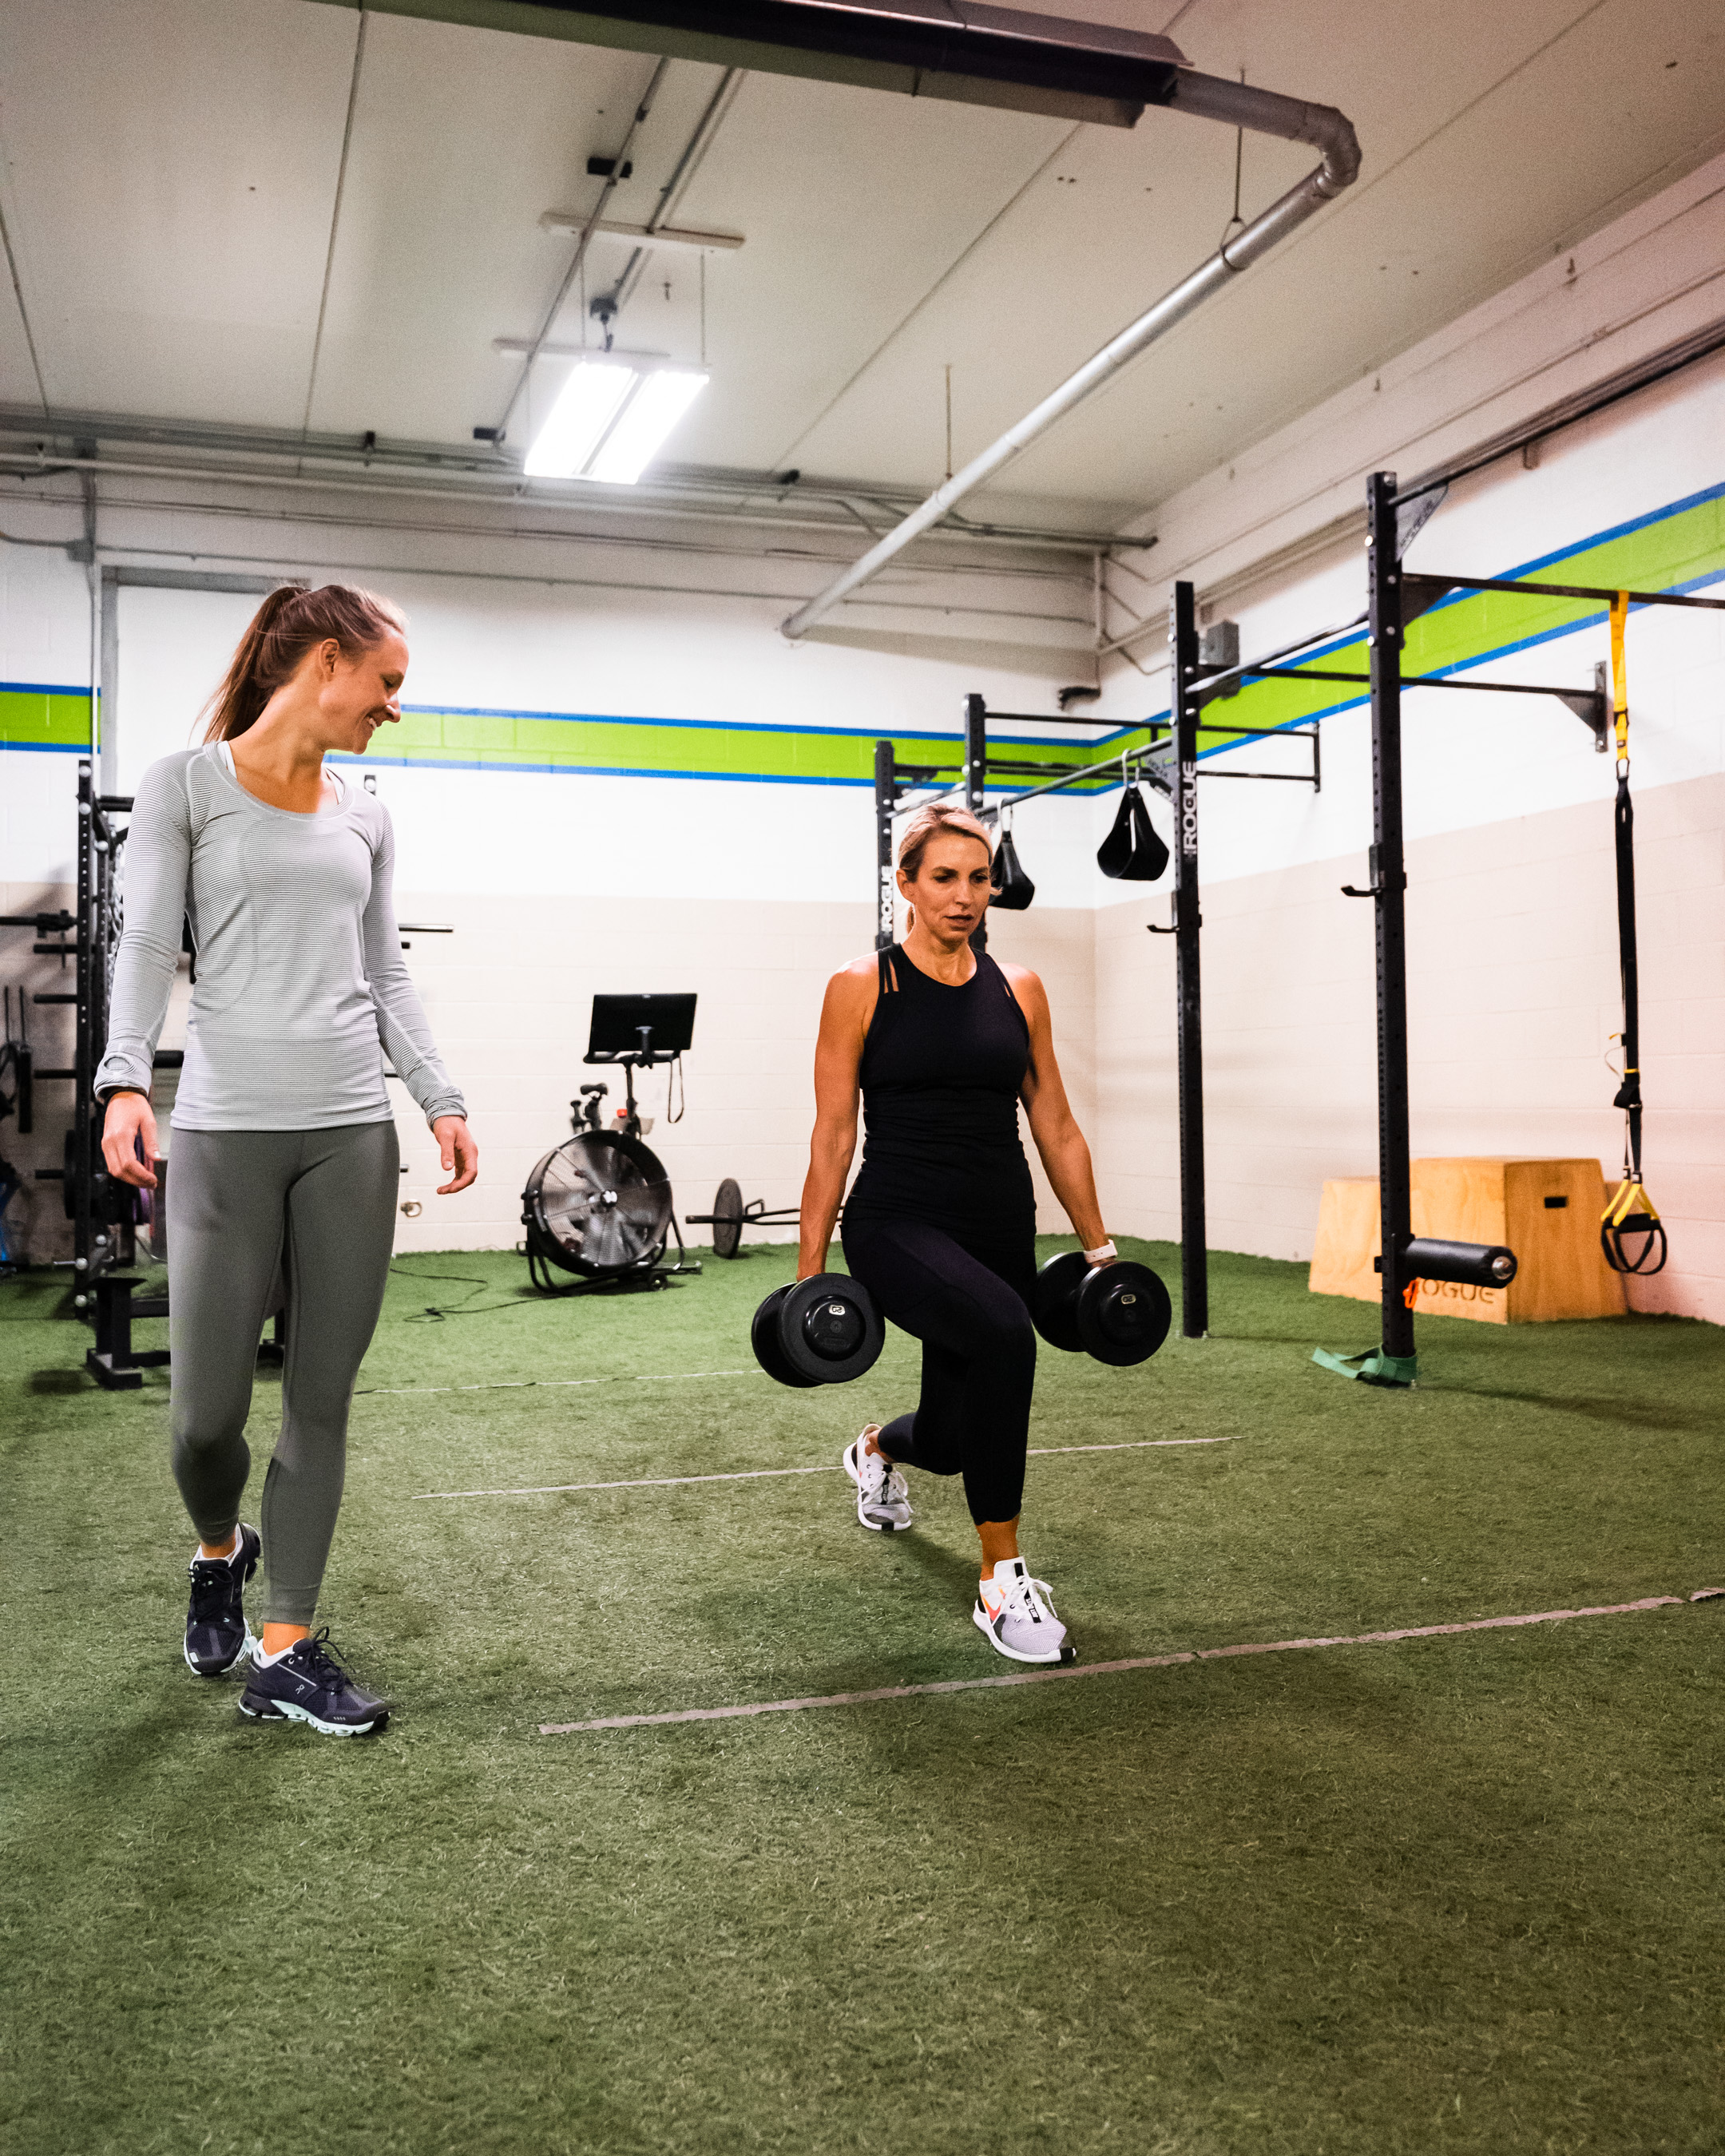 One-on-one training at Prevail Grand Rapids personal training and gym located in Ada, Michigan.